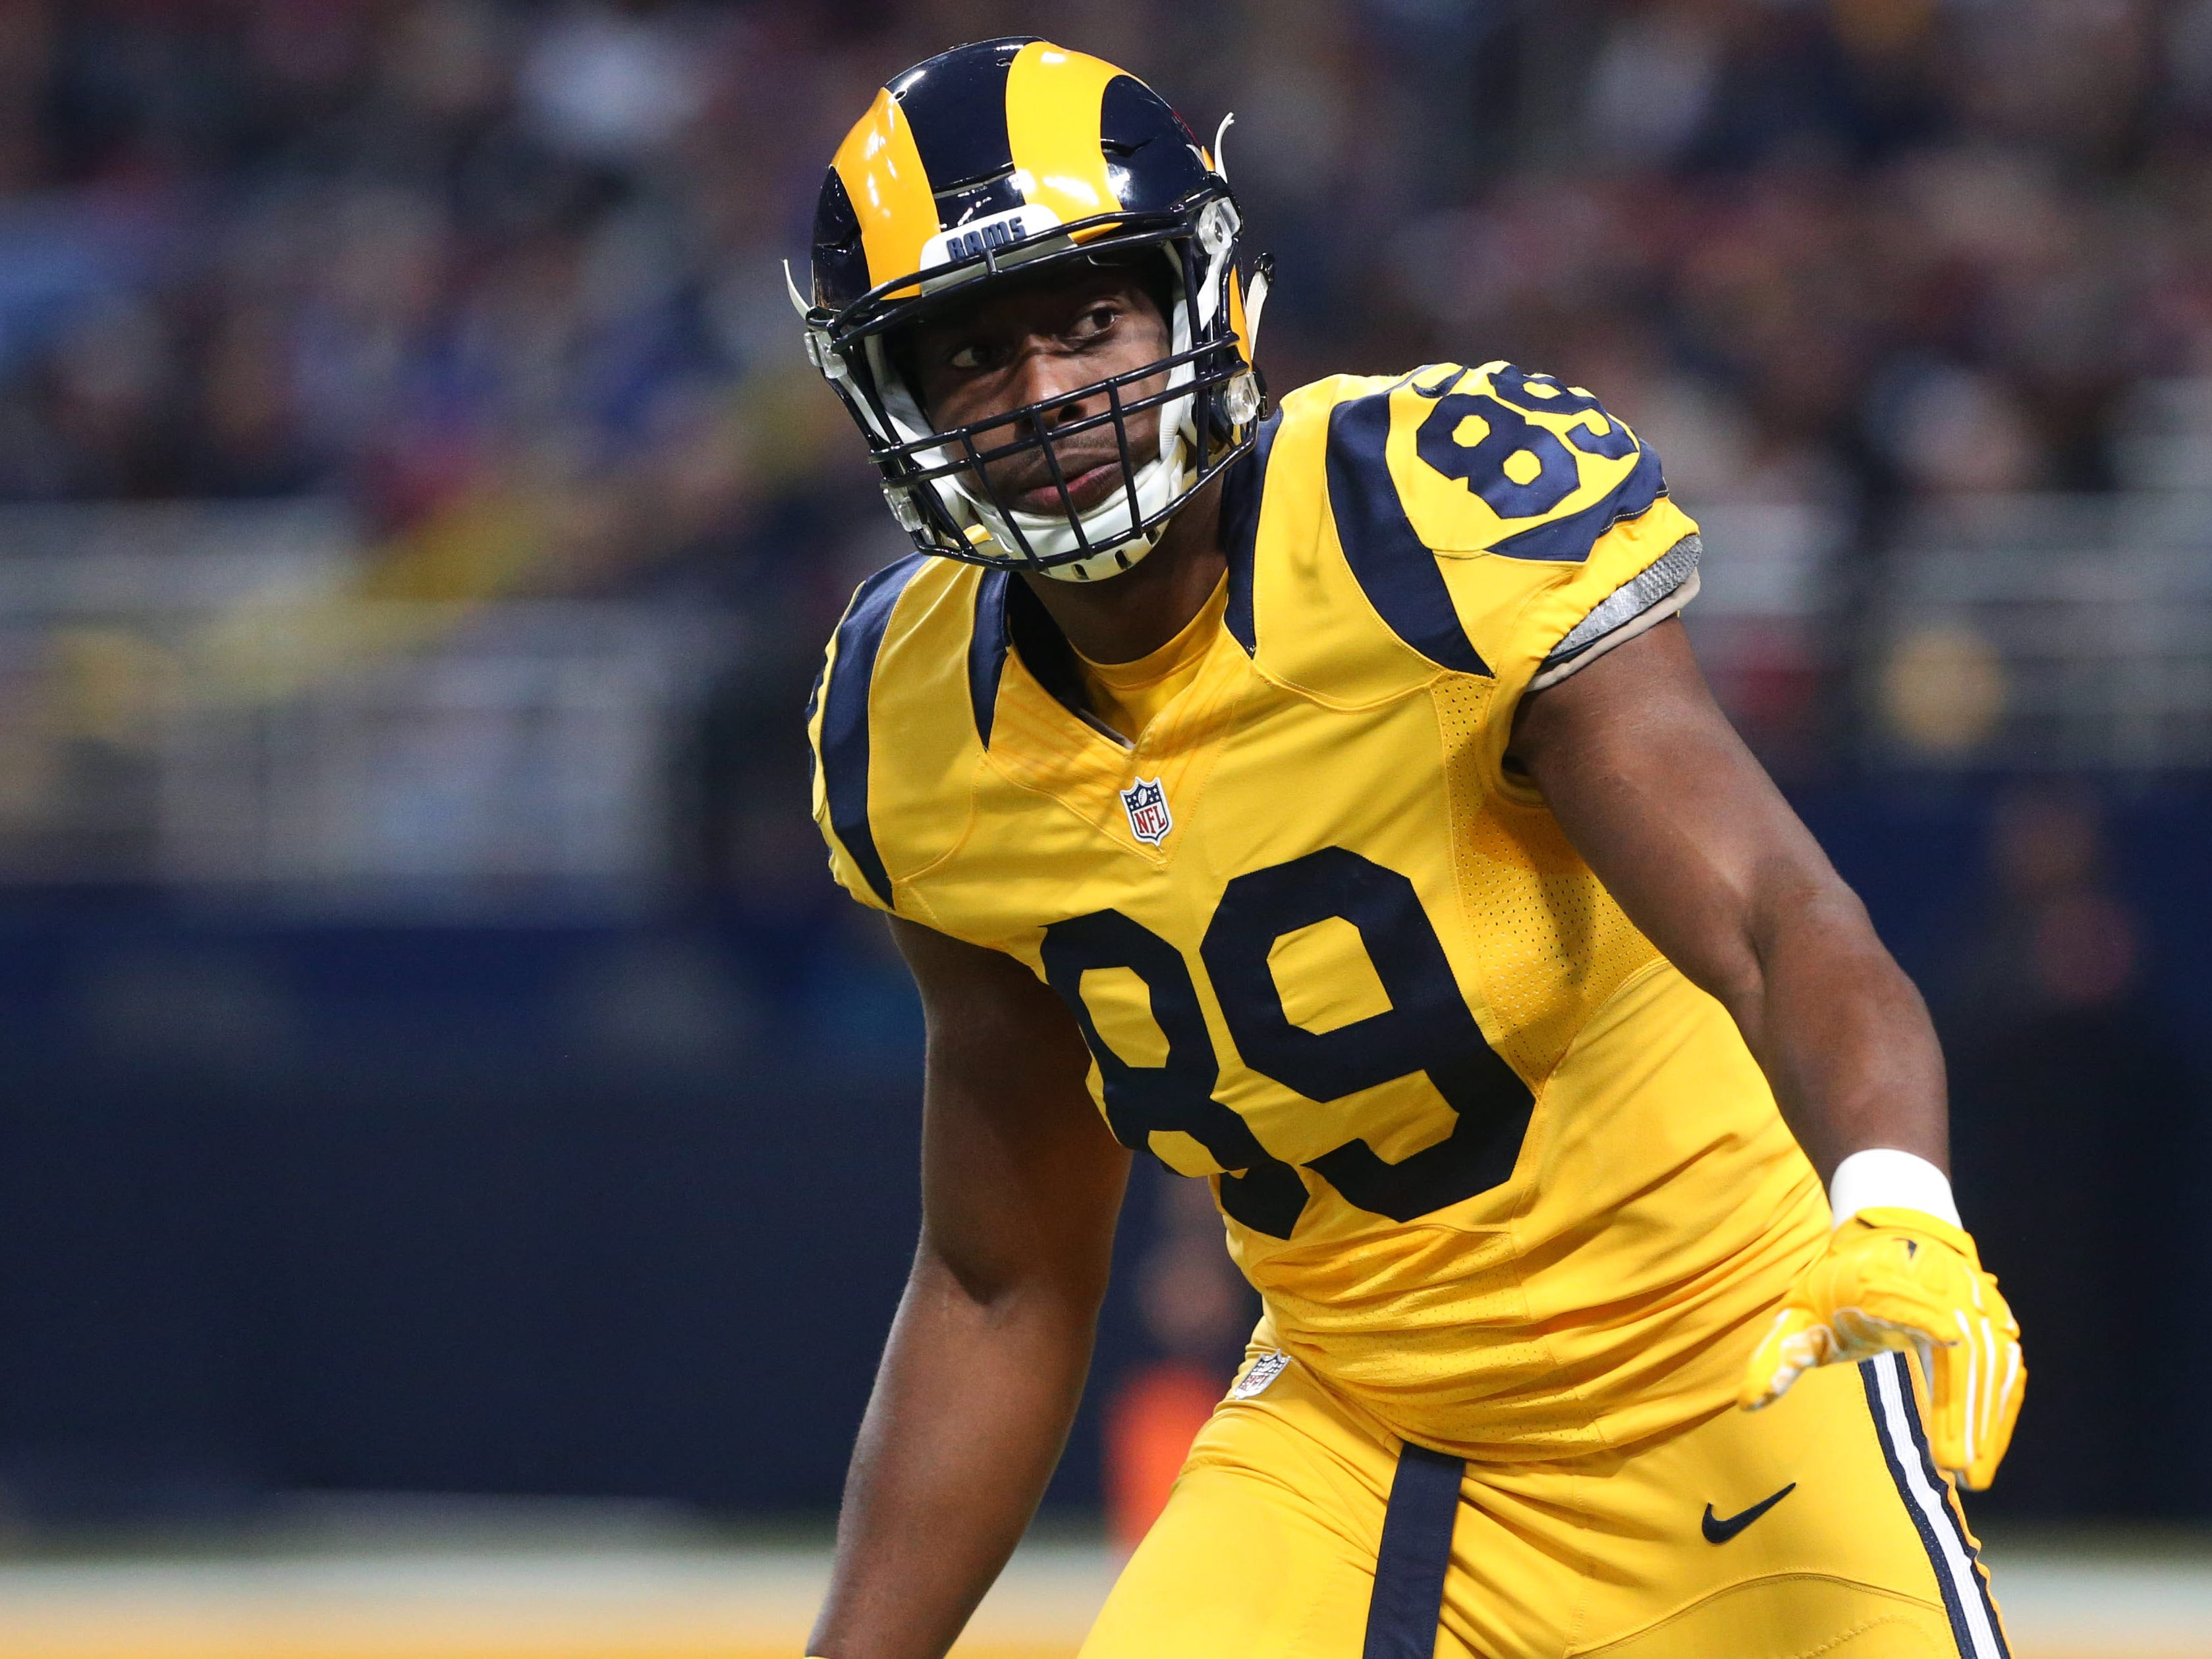 That's a whole lot of yellow in these 2015 Rams uniforms.